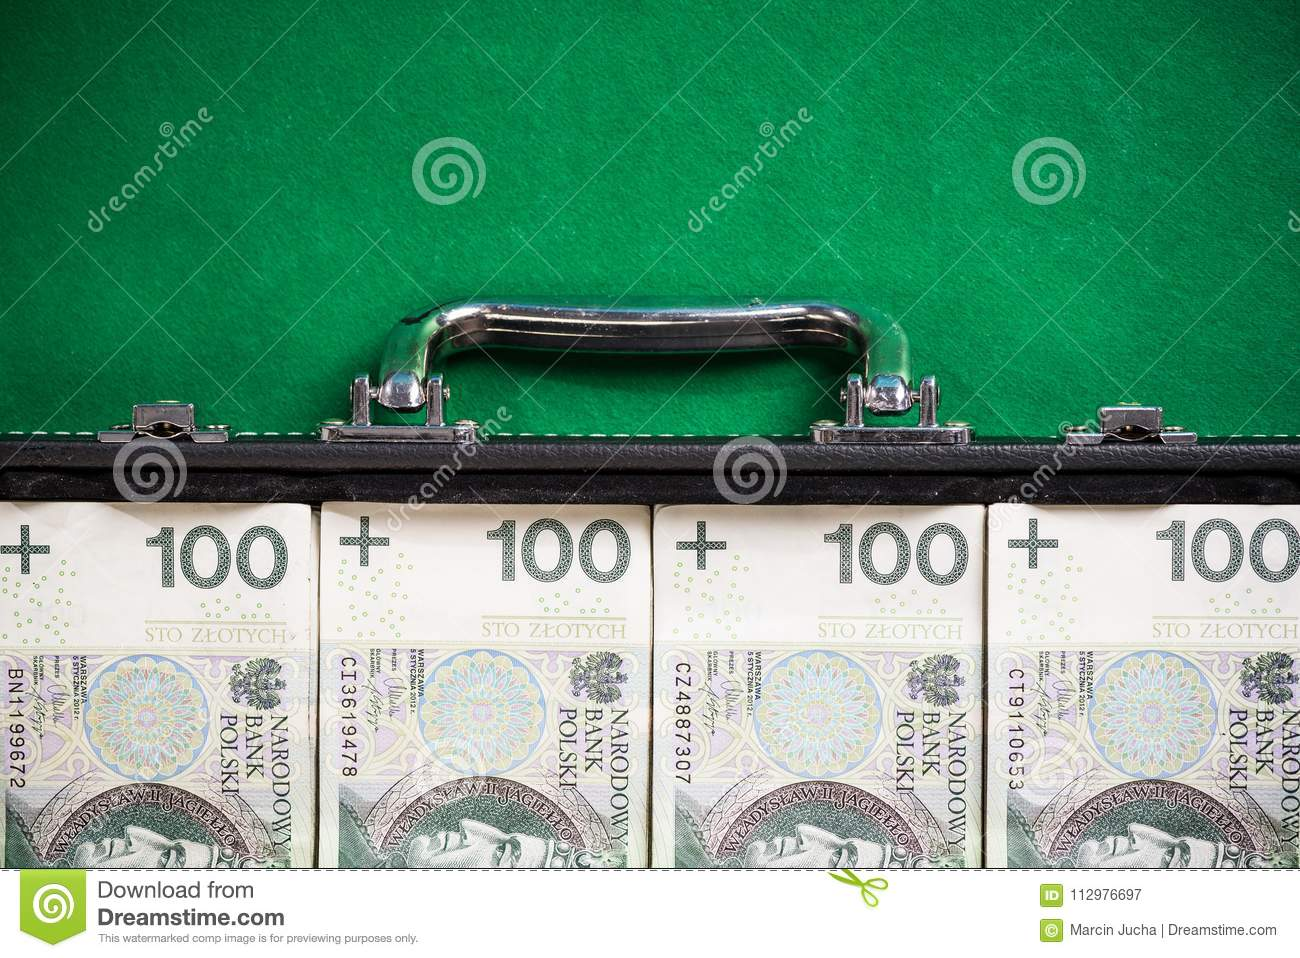 Suitcase with polish zloty , bribery and corruption concept